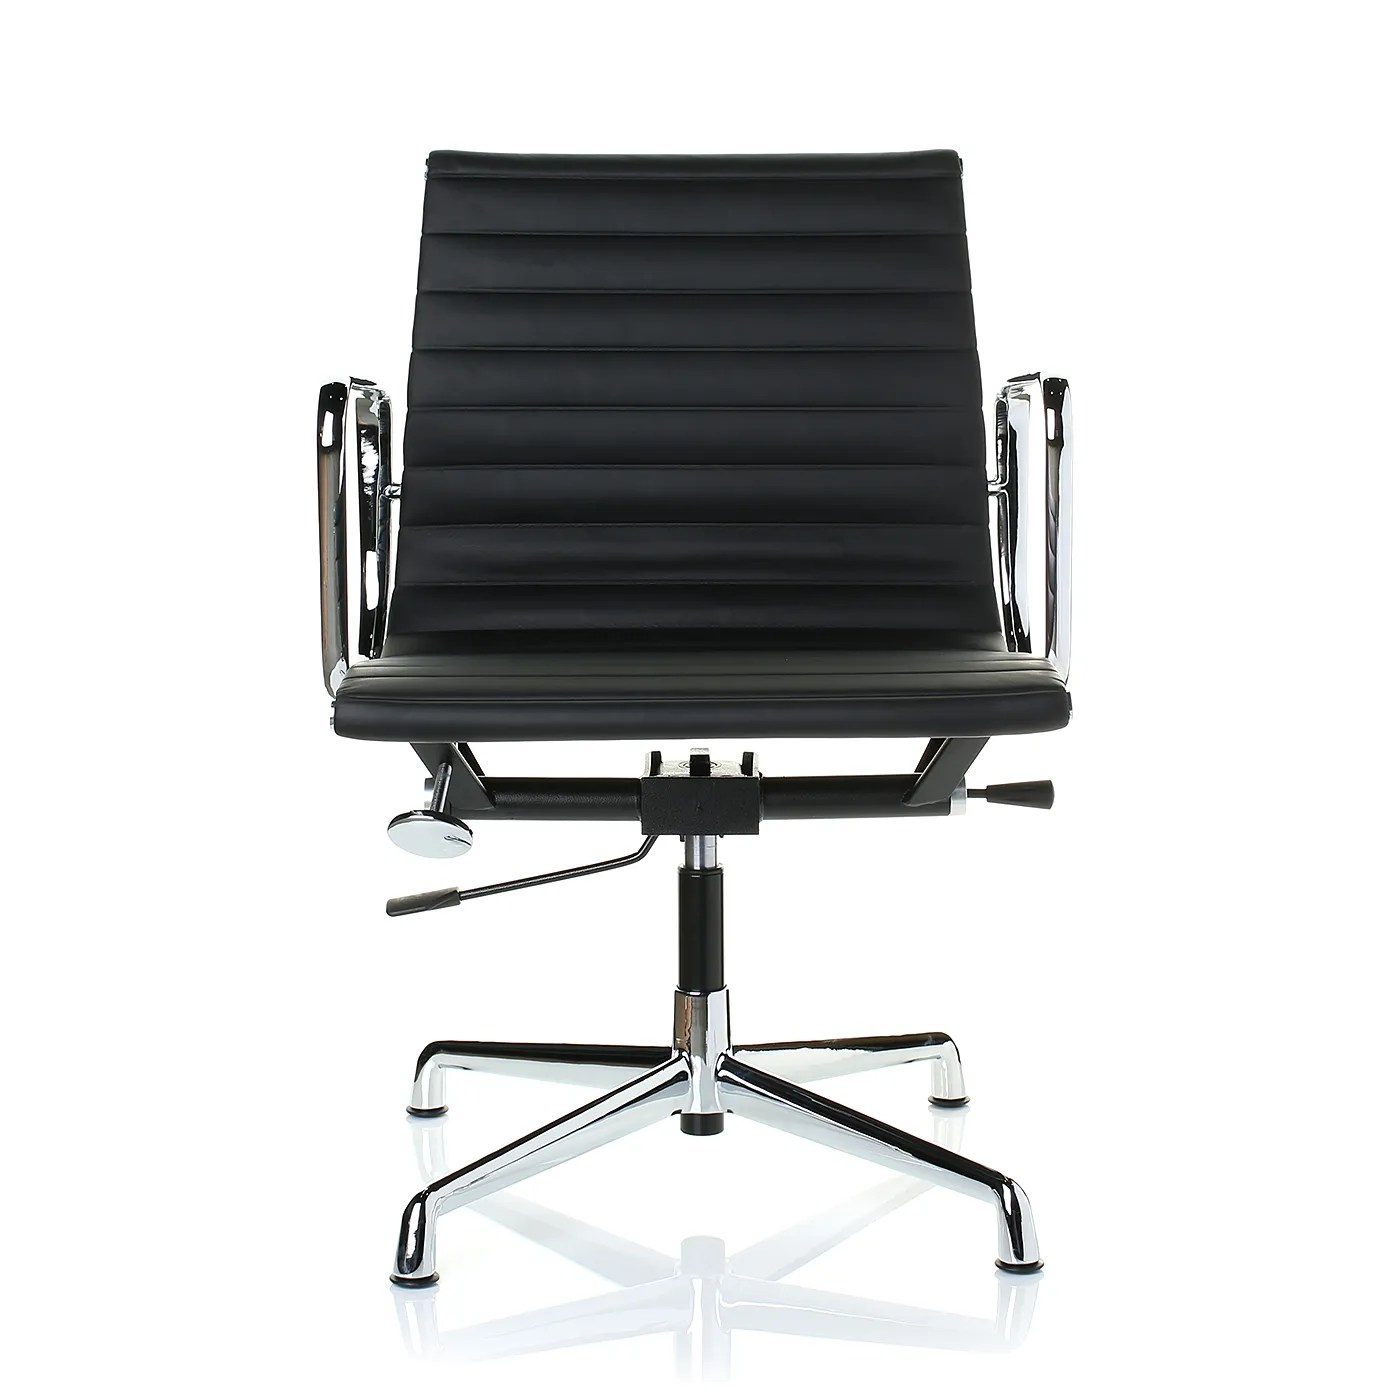 Chair Eames Charles Eames Replica | Eames Office Aluminium Chair Ea 118 | Swivel Uk